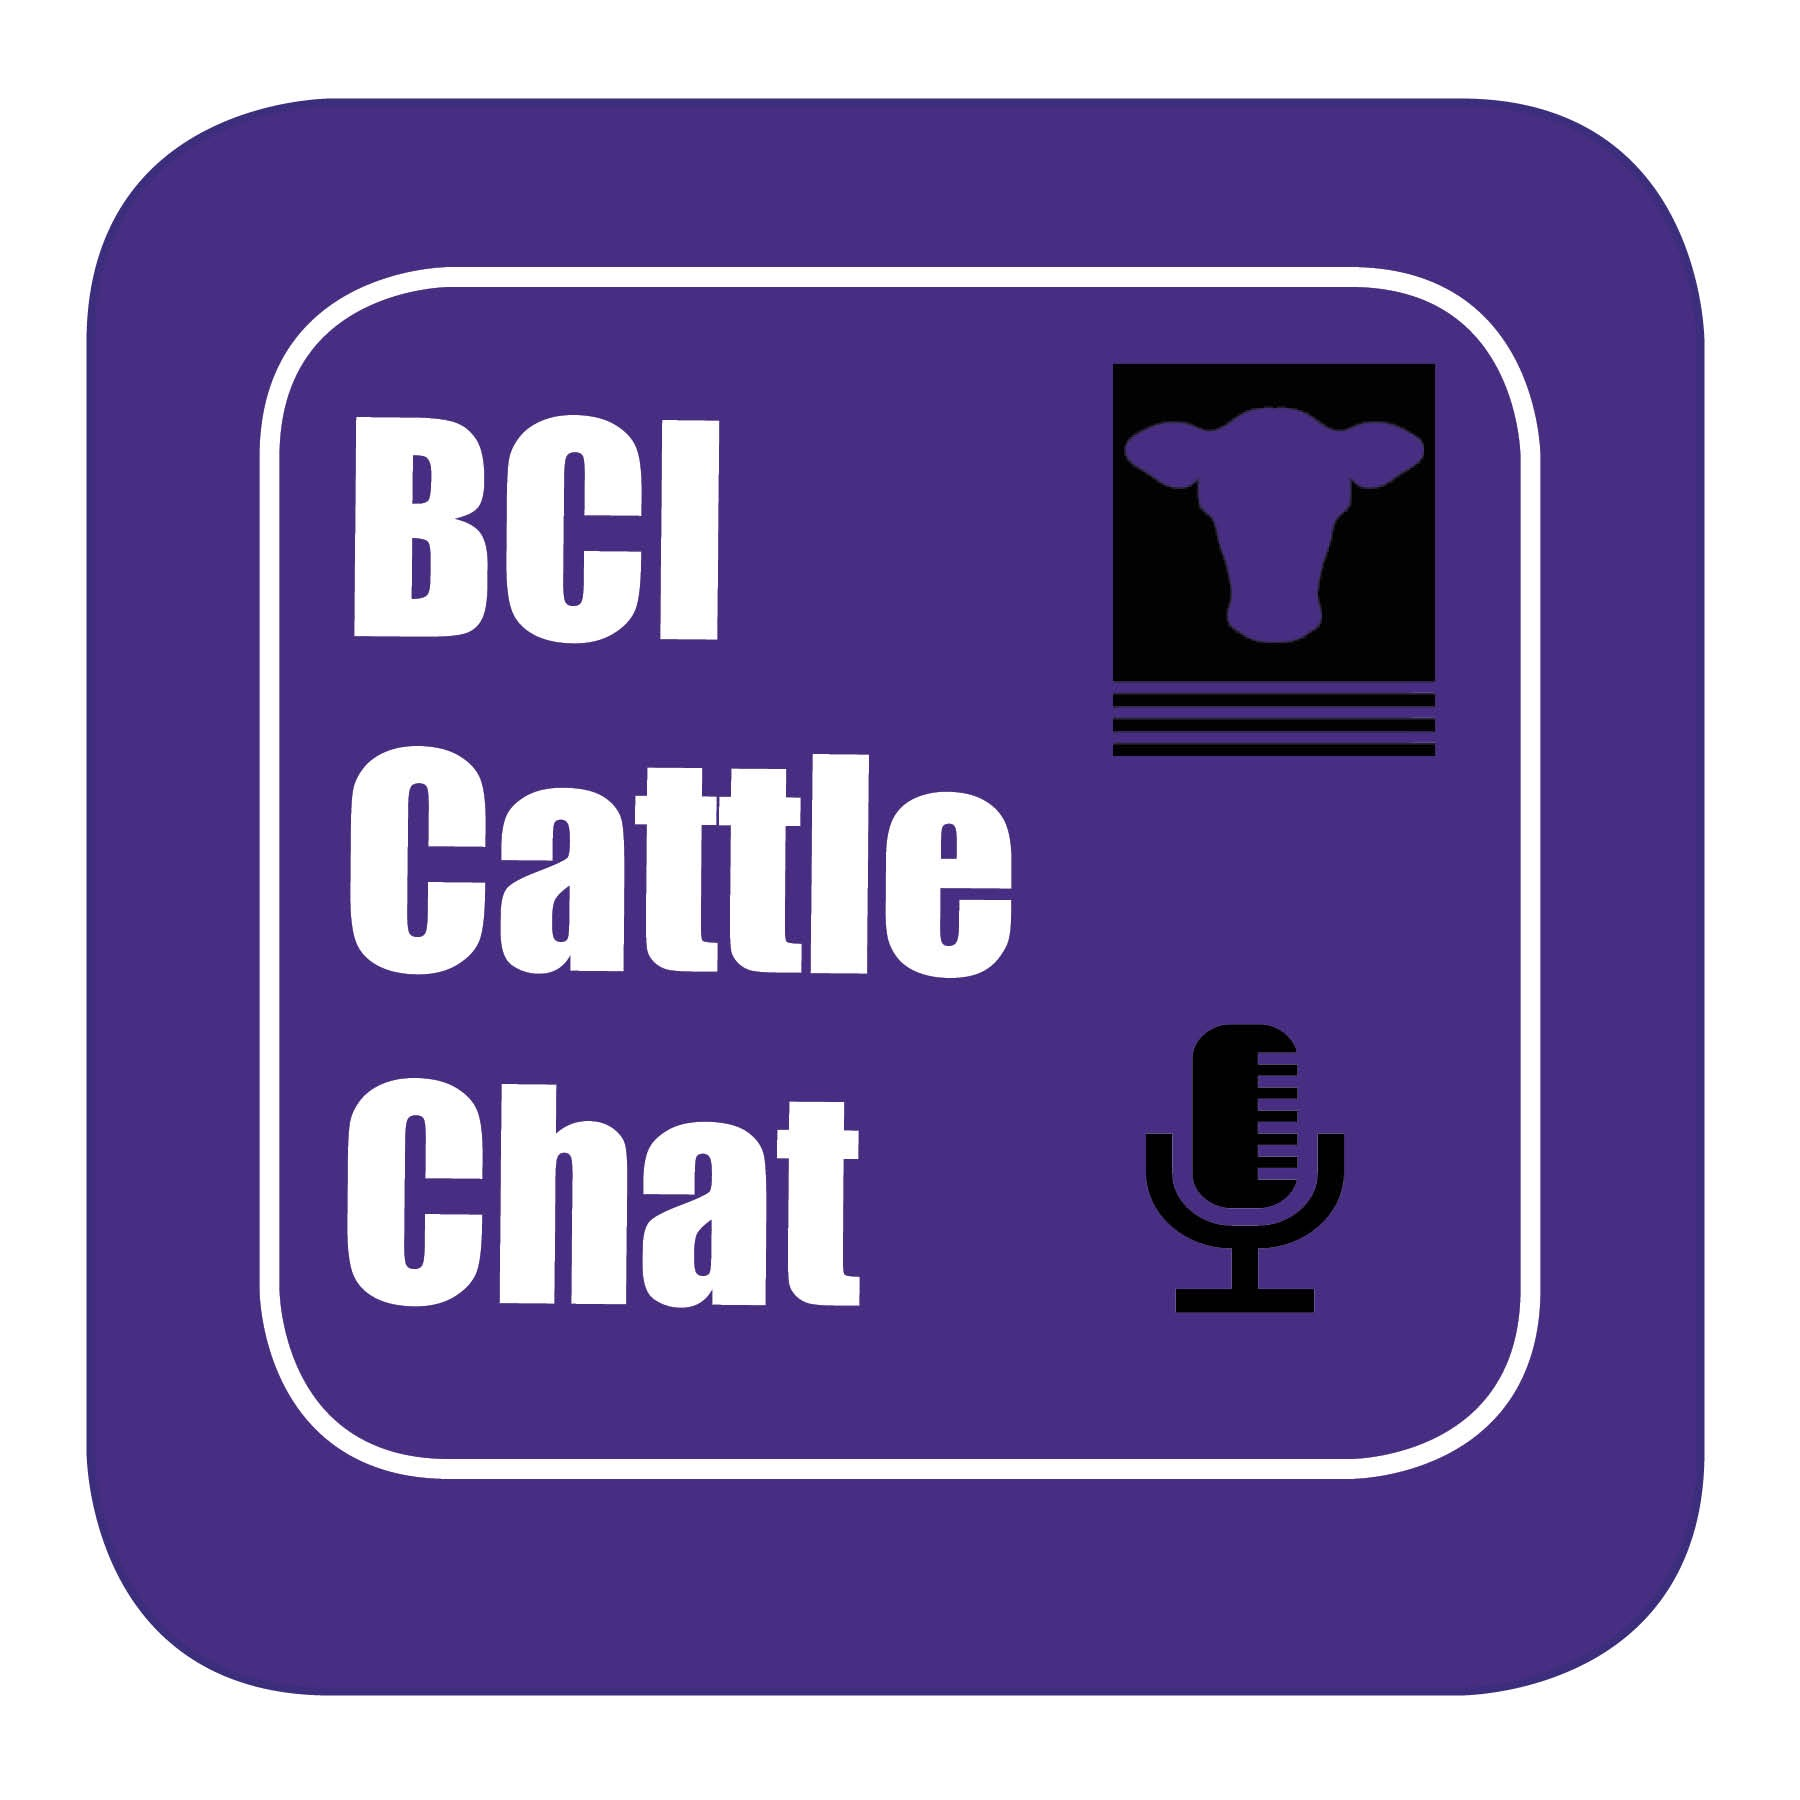 BCI Cattle Chat - Episode 18